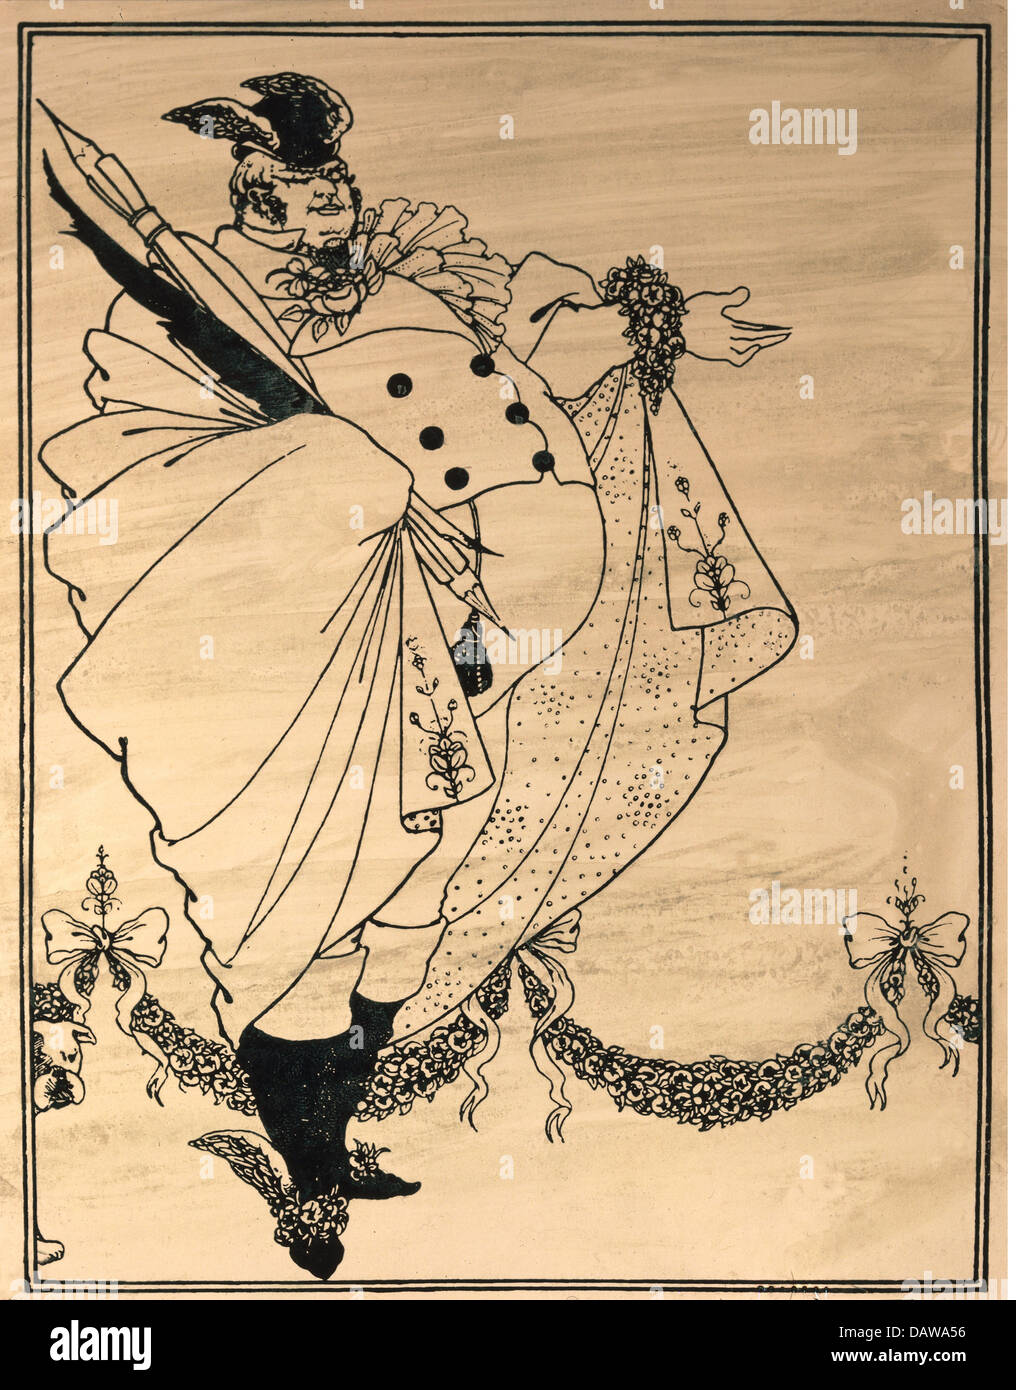 fine arts, Beardsley, Aubrey (1872 - 1898), print, 'The Journalist', satirical drawing, published in the - Stock Image